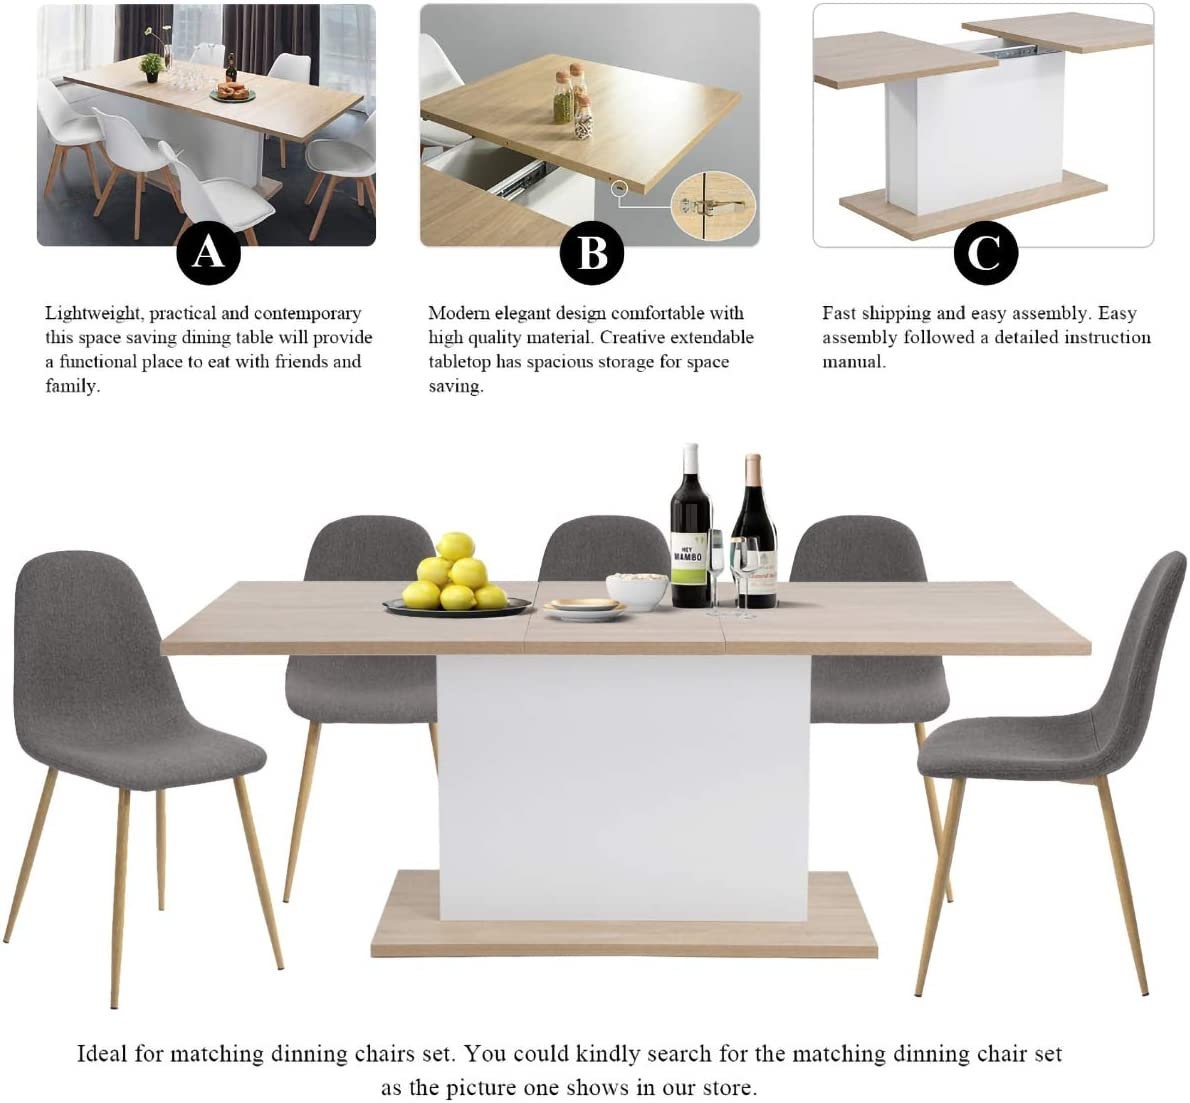 Geniqua Extendable Dining Table 4-8 Seaters Kitchen Furniture Modern Beech Wood Board